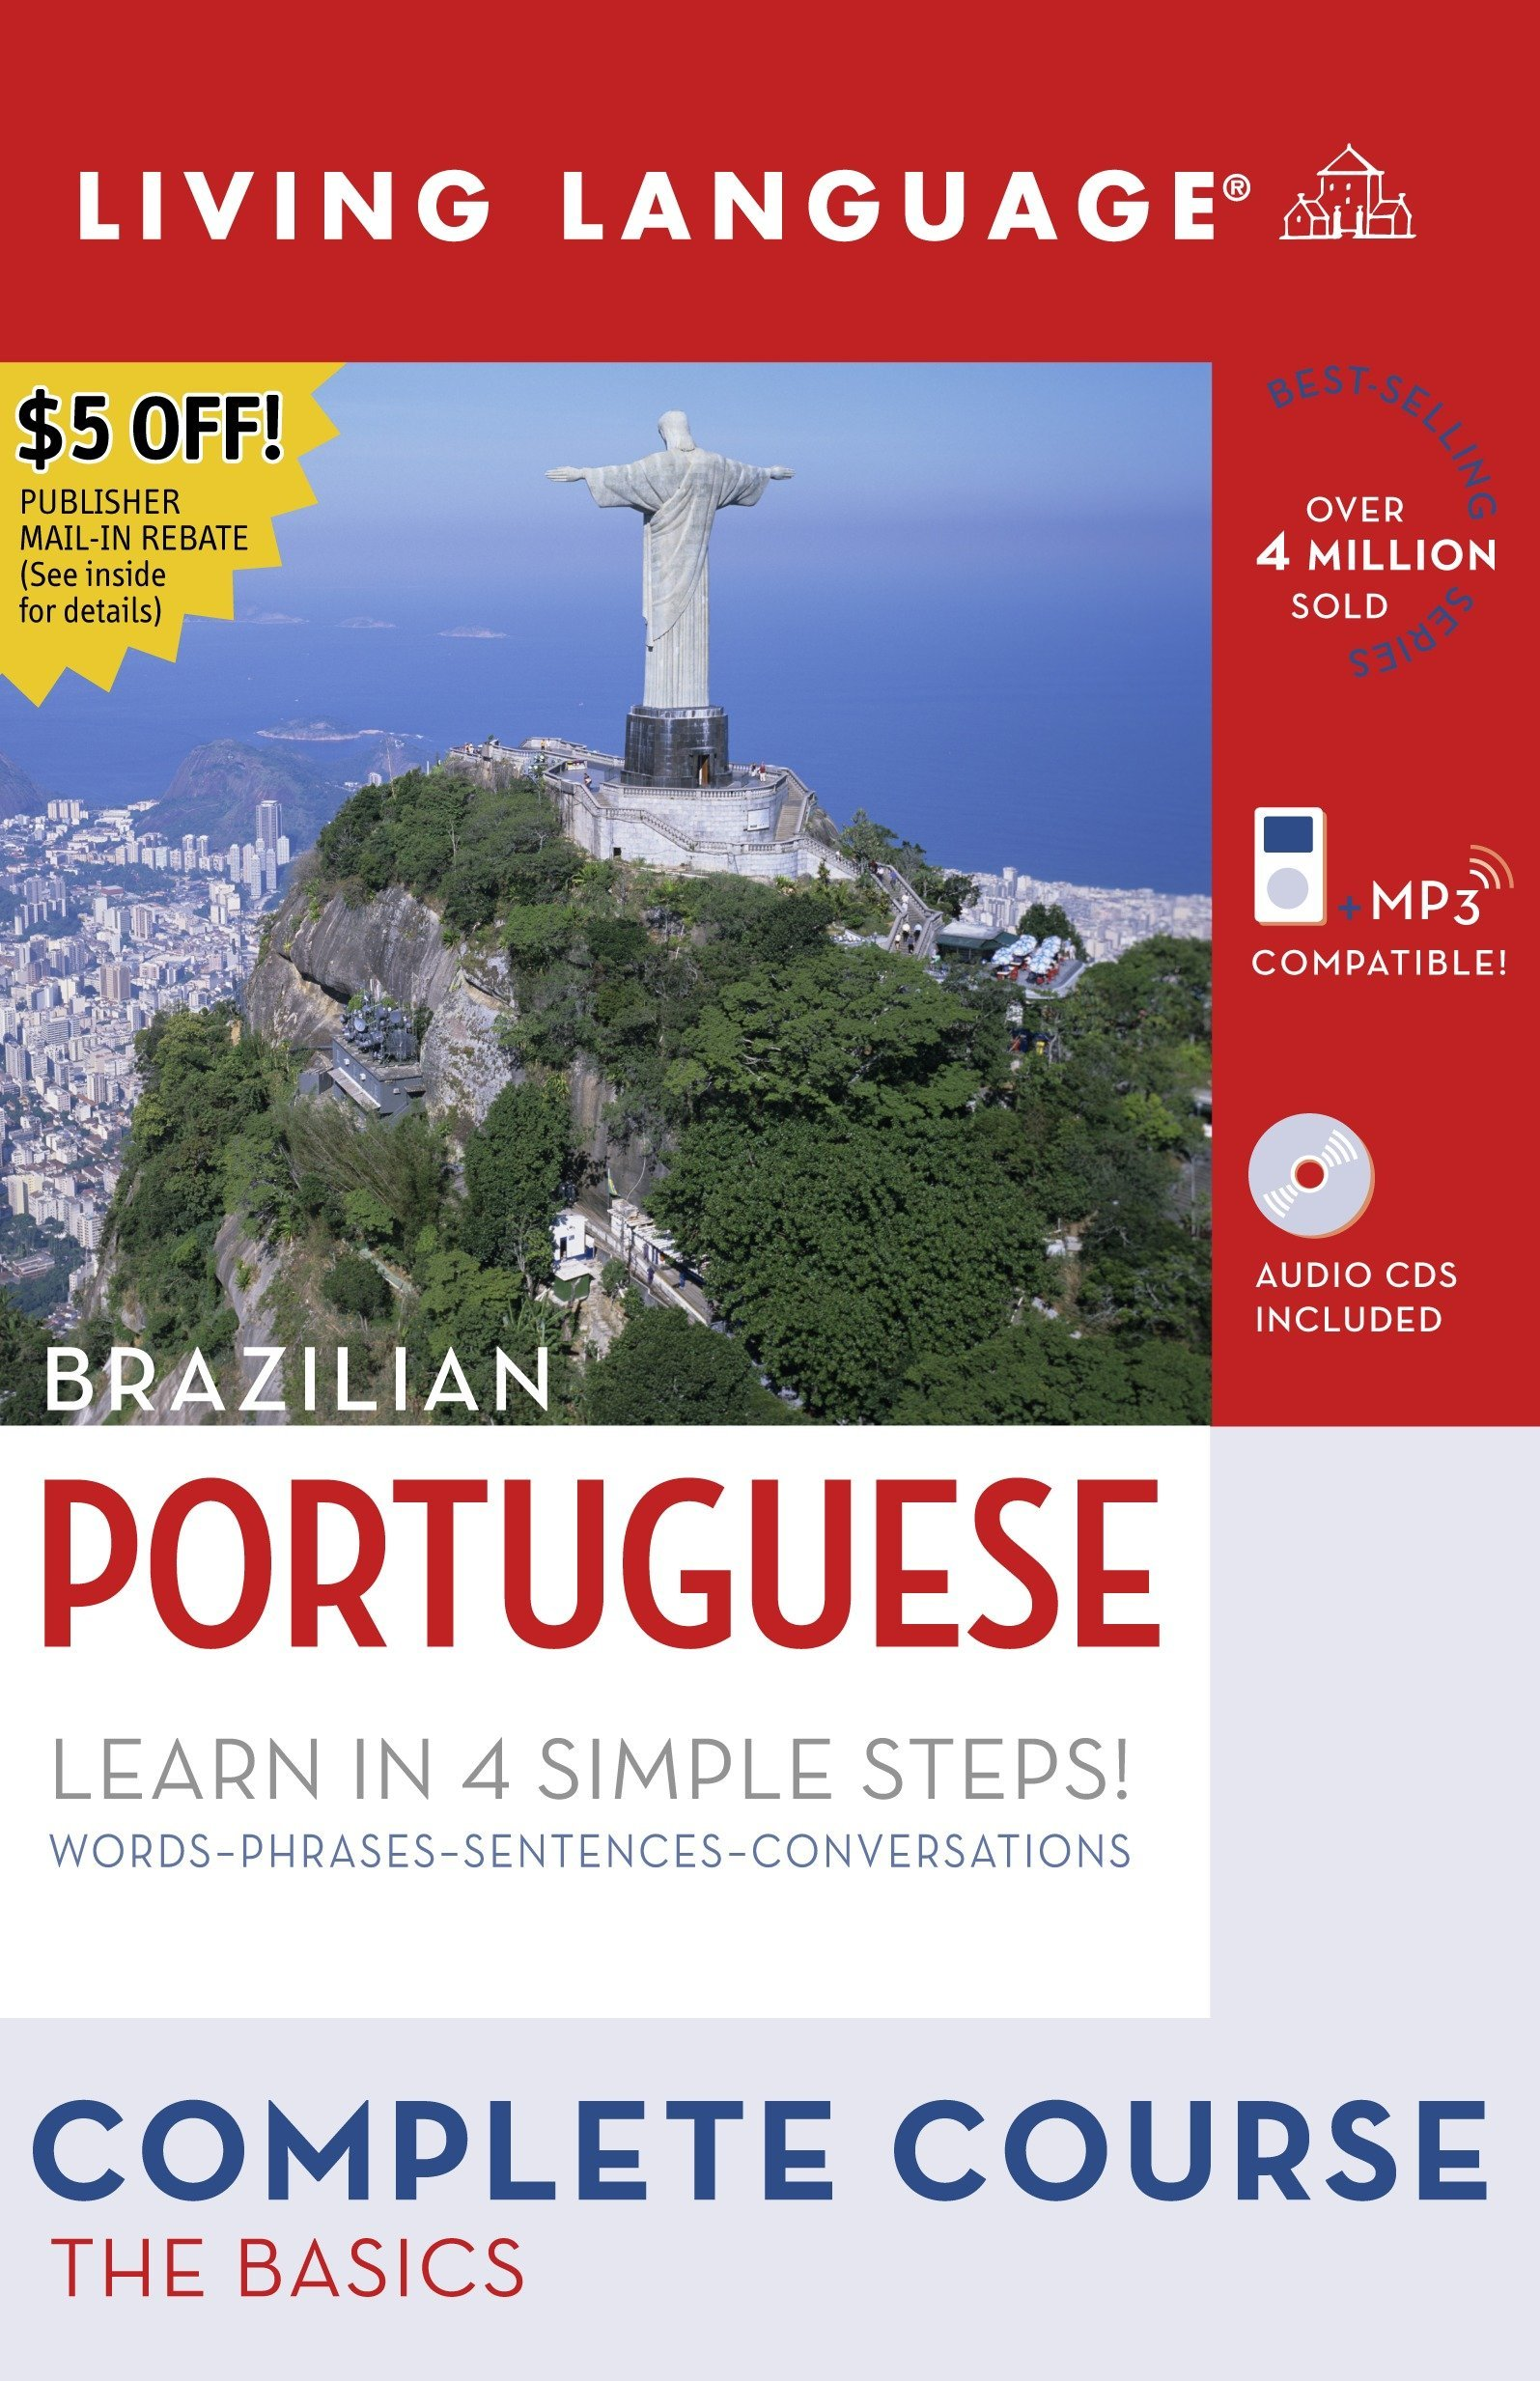 Complete Portuguese: The Basics (Book and CD Set): Includes Coursebook, 4 Audio CDs, and Learner's Dictionary (Complete Basic Courses) by Living Language